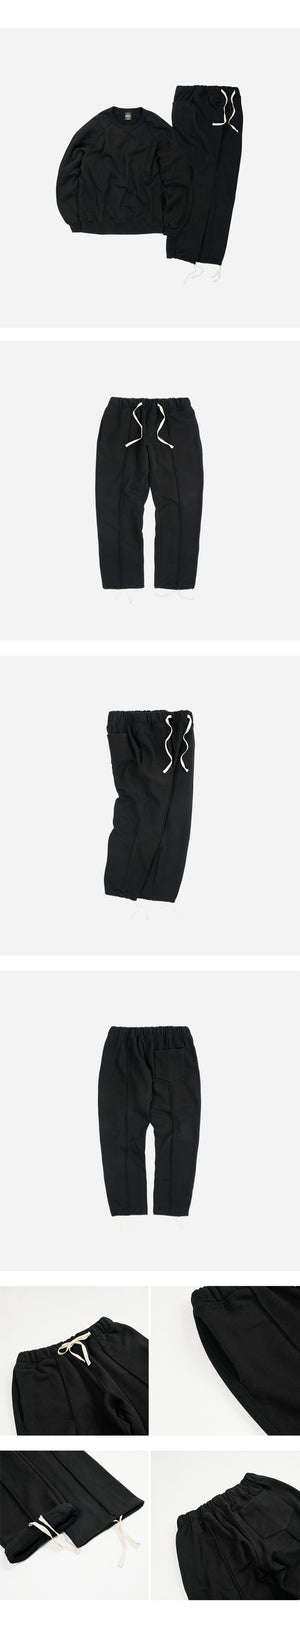 Piping Sweatpants - Black